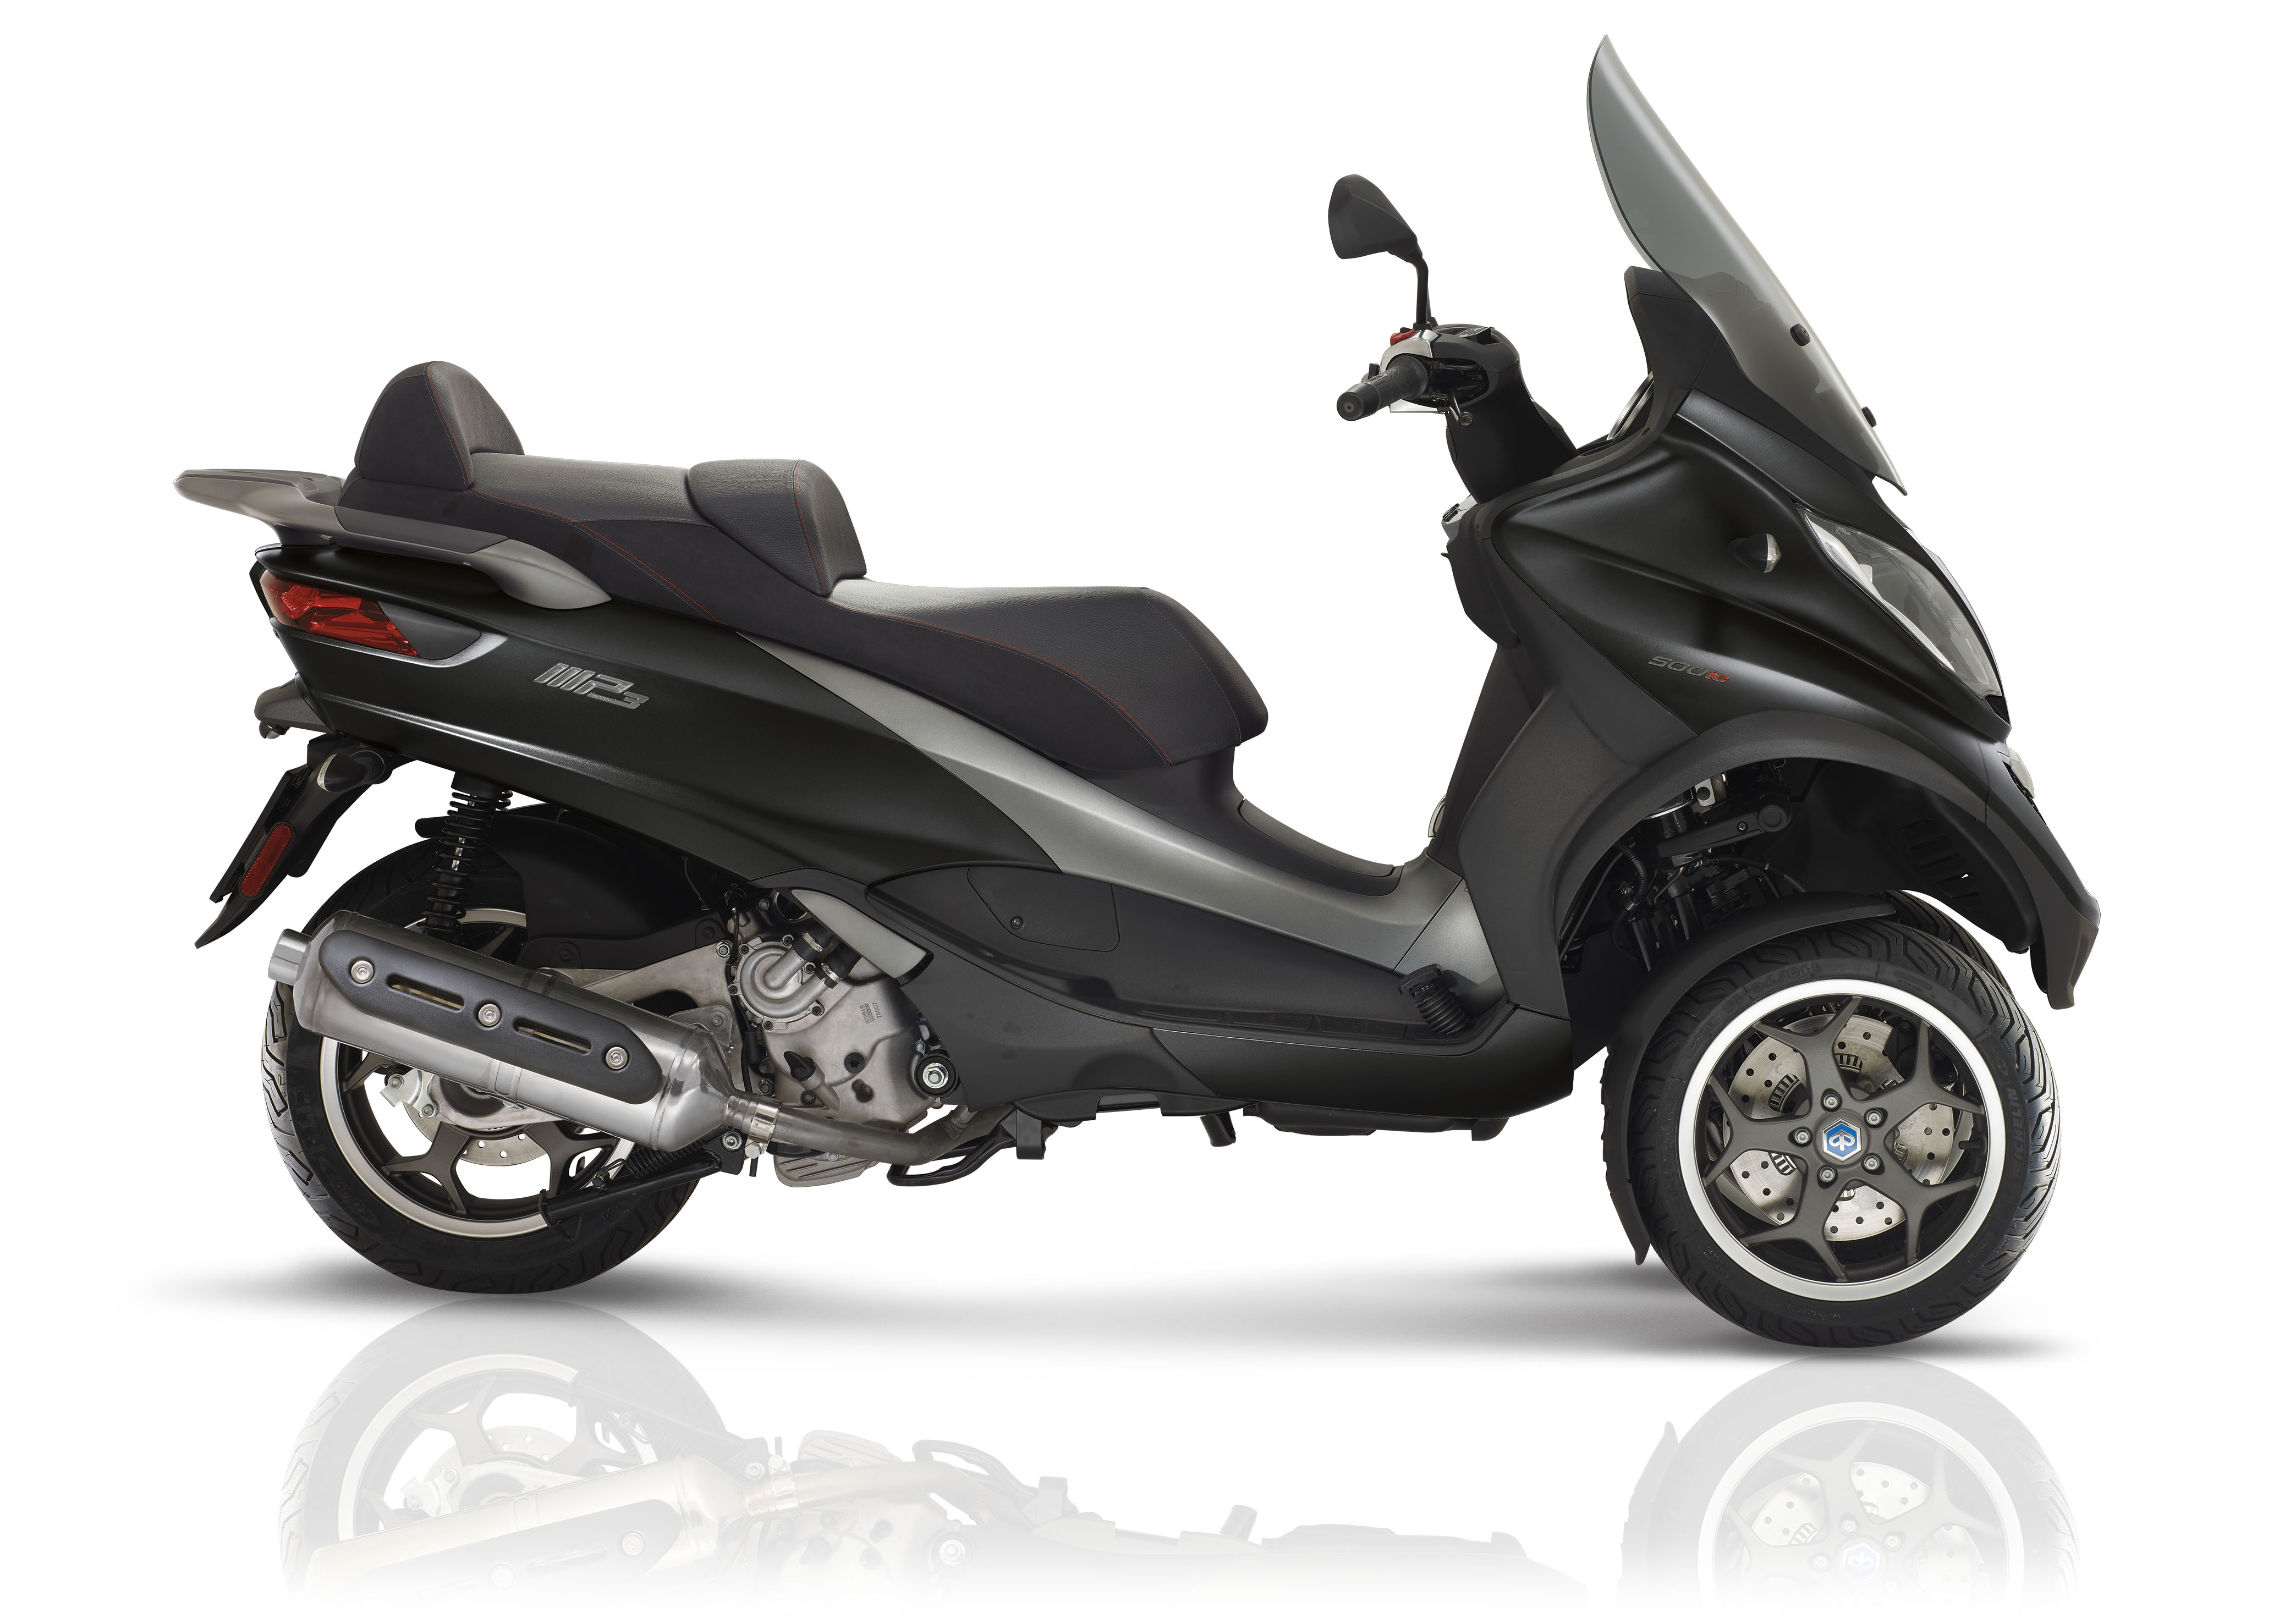 new 2017 piaggio mp3 500 sport lt abs scooters in sherman oaks ca. Black Bedroom Furniture Sets. Home Design Ideas